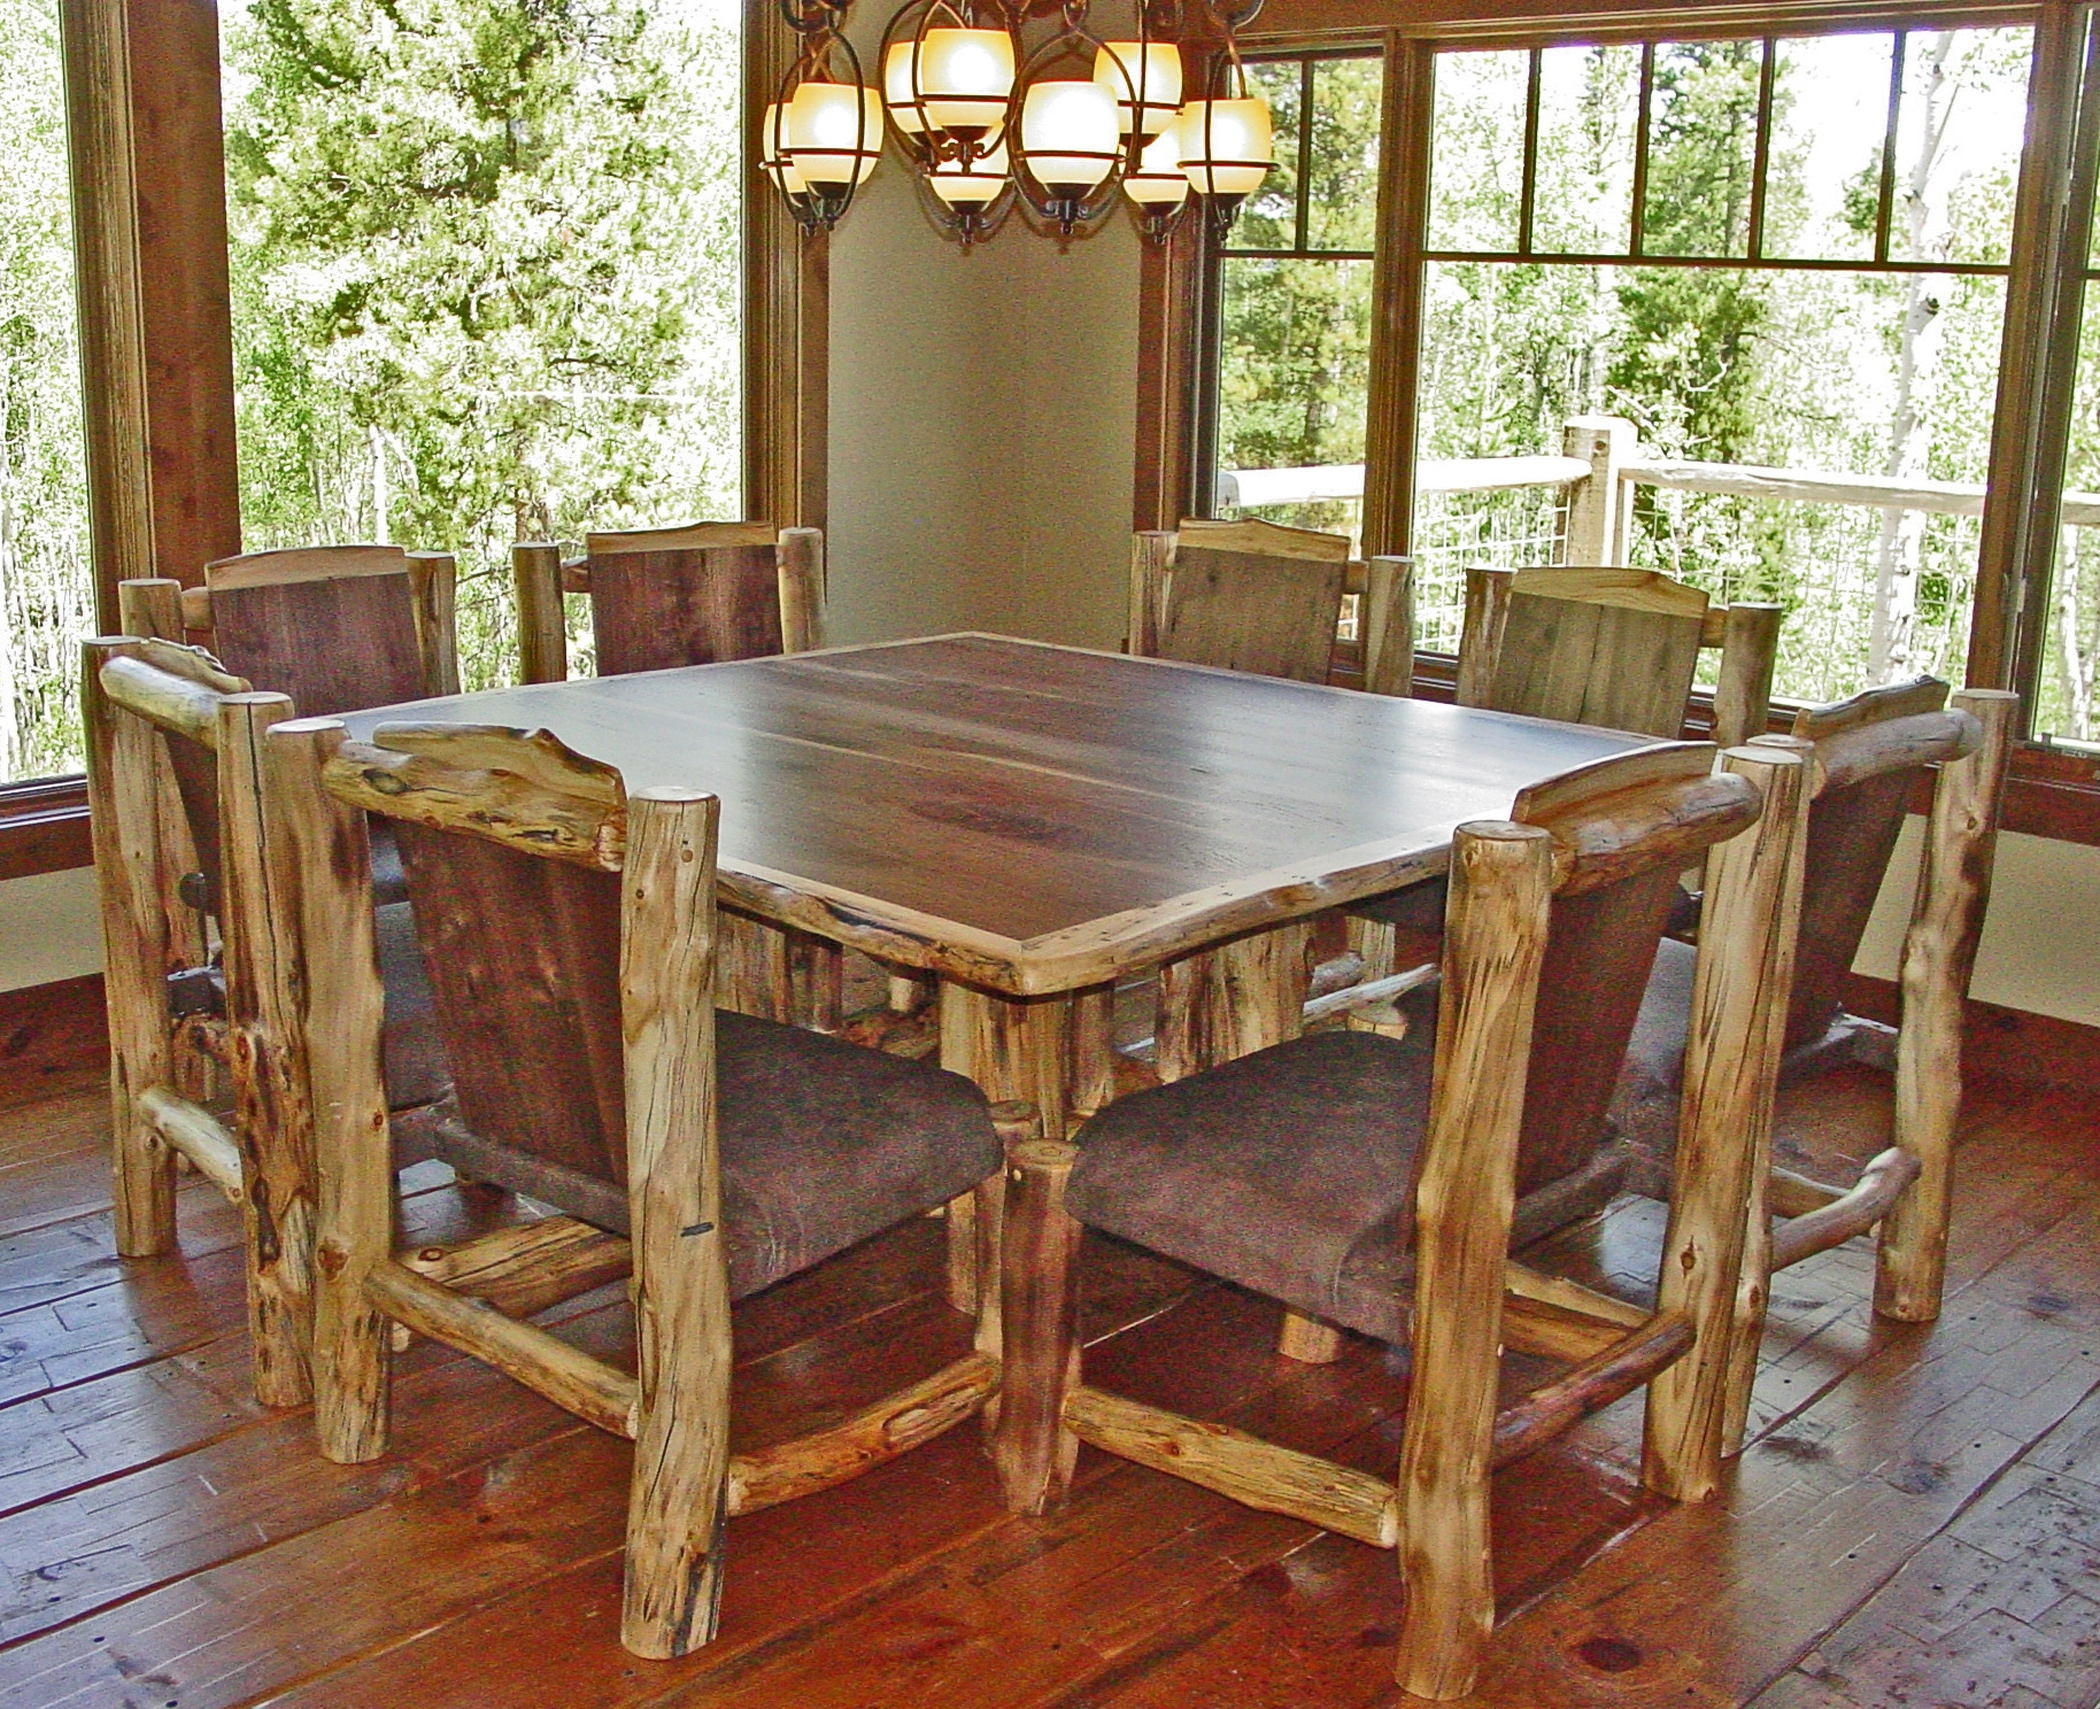 Popular Dining Tables For Eight Throughout Rustic Log Square Dining Table Below Artistic Pendant Lighting And (View 17 of 25)